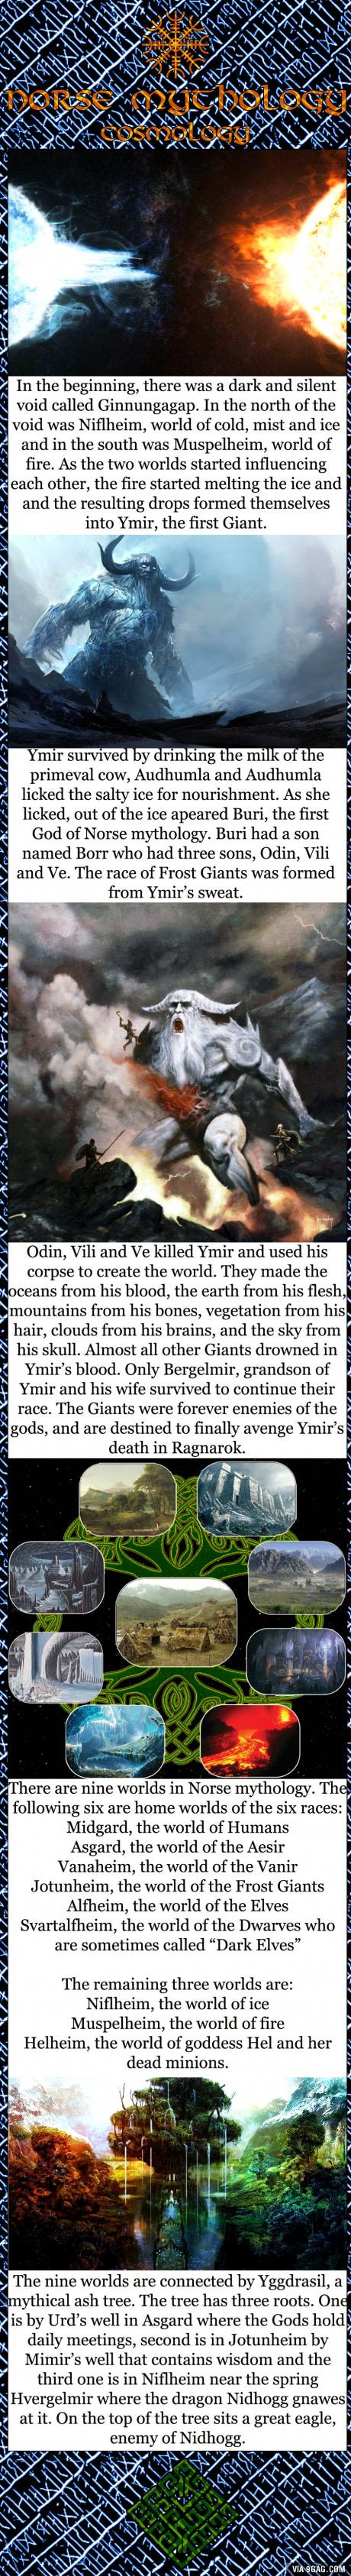 Norse mythology - Cosmology                                                                                                                                                                                 More